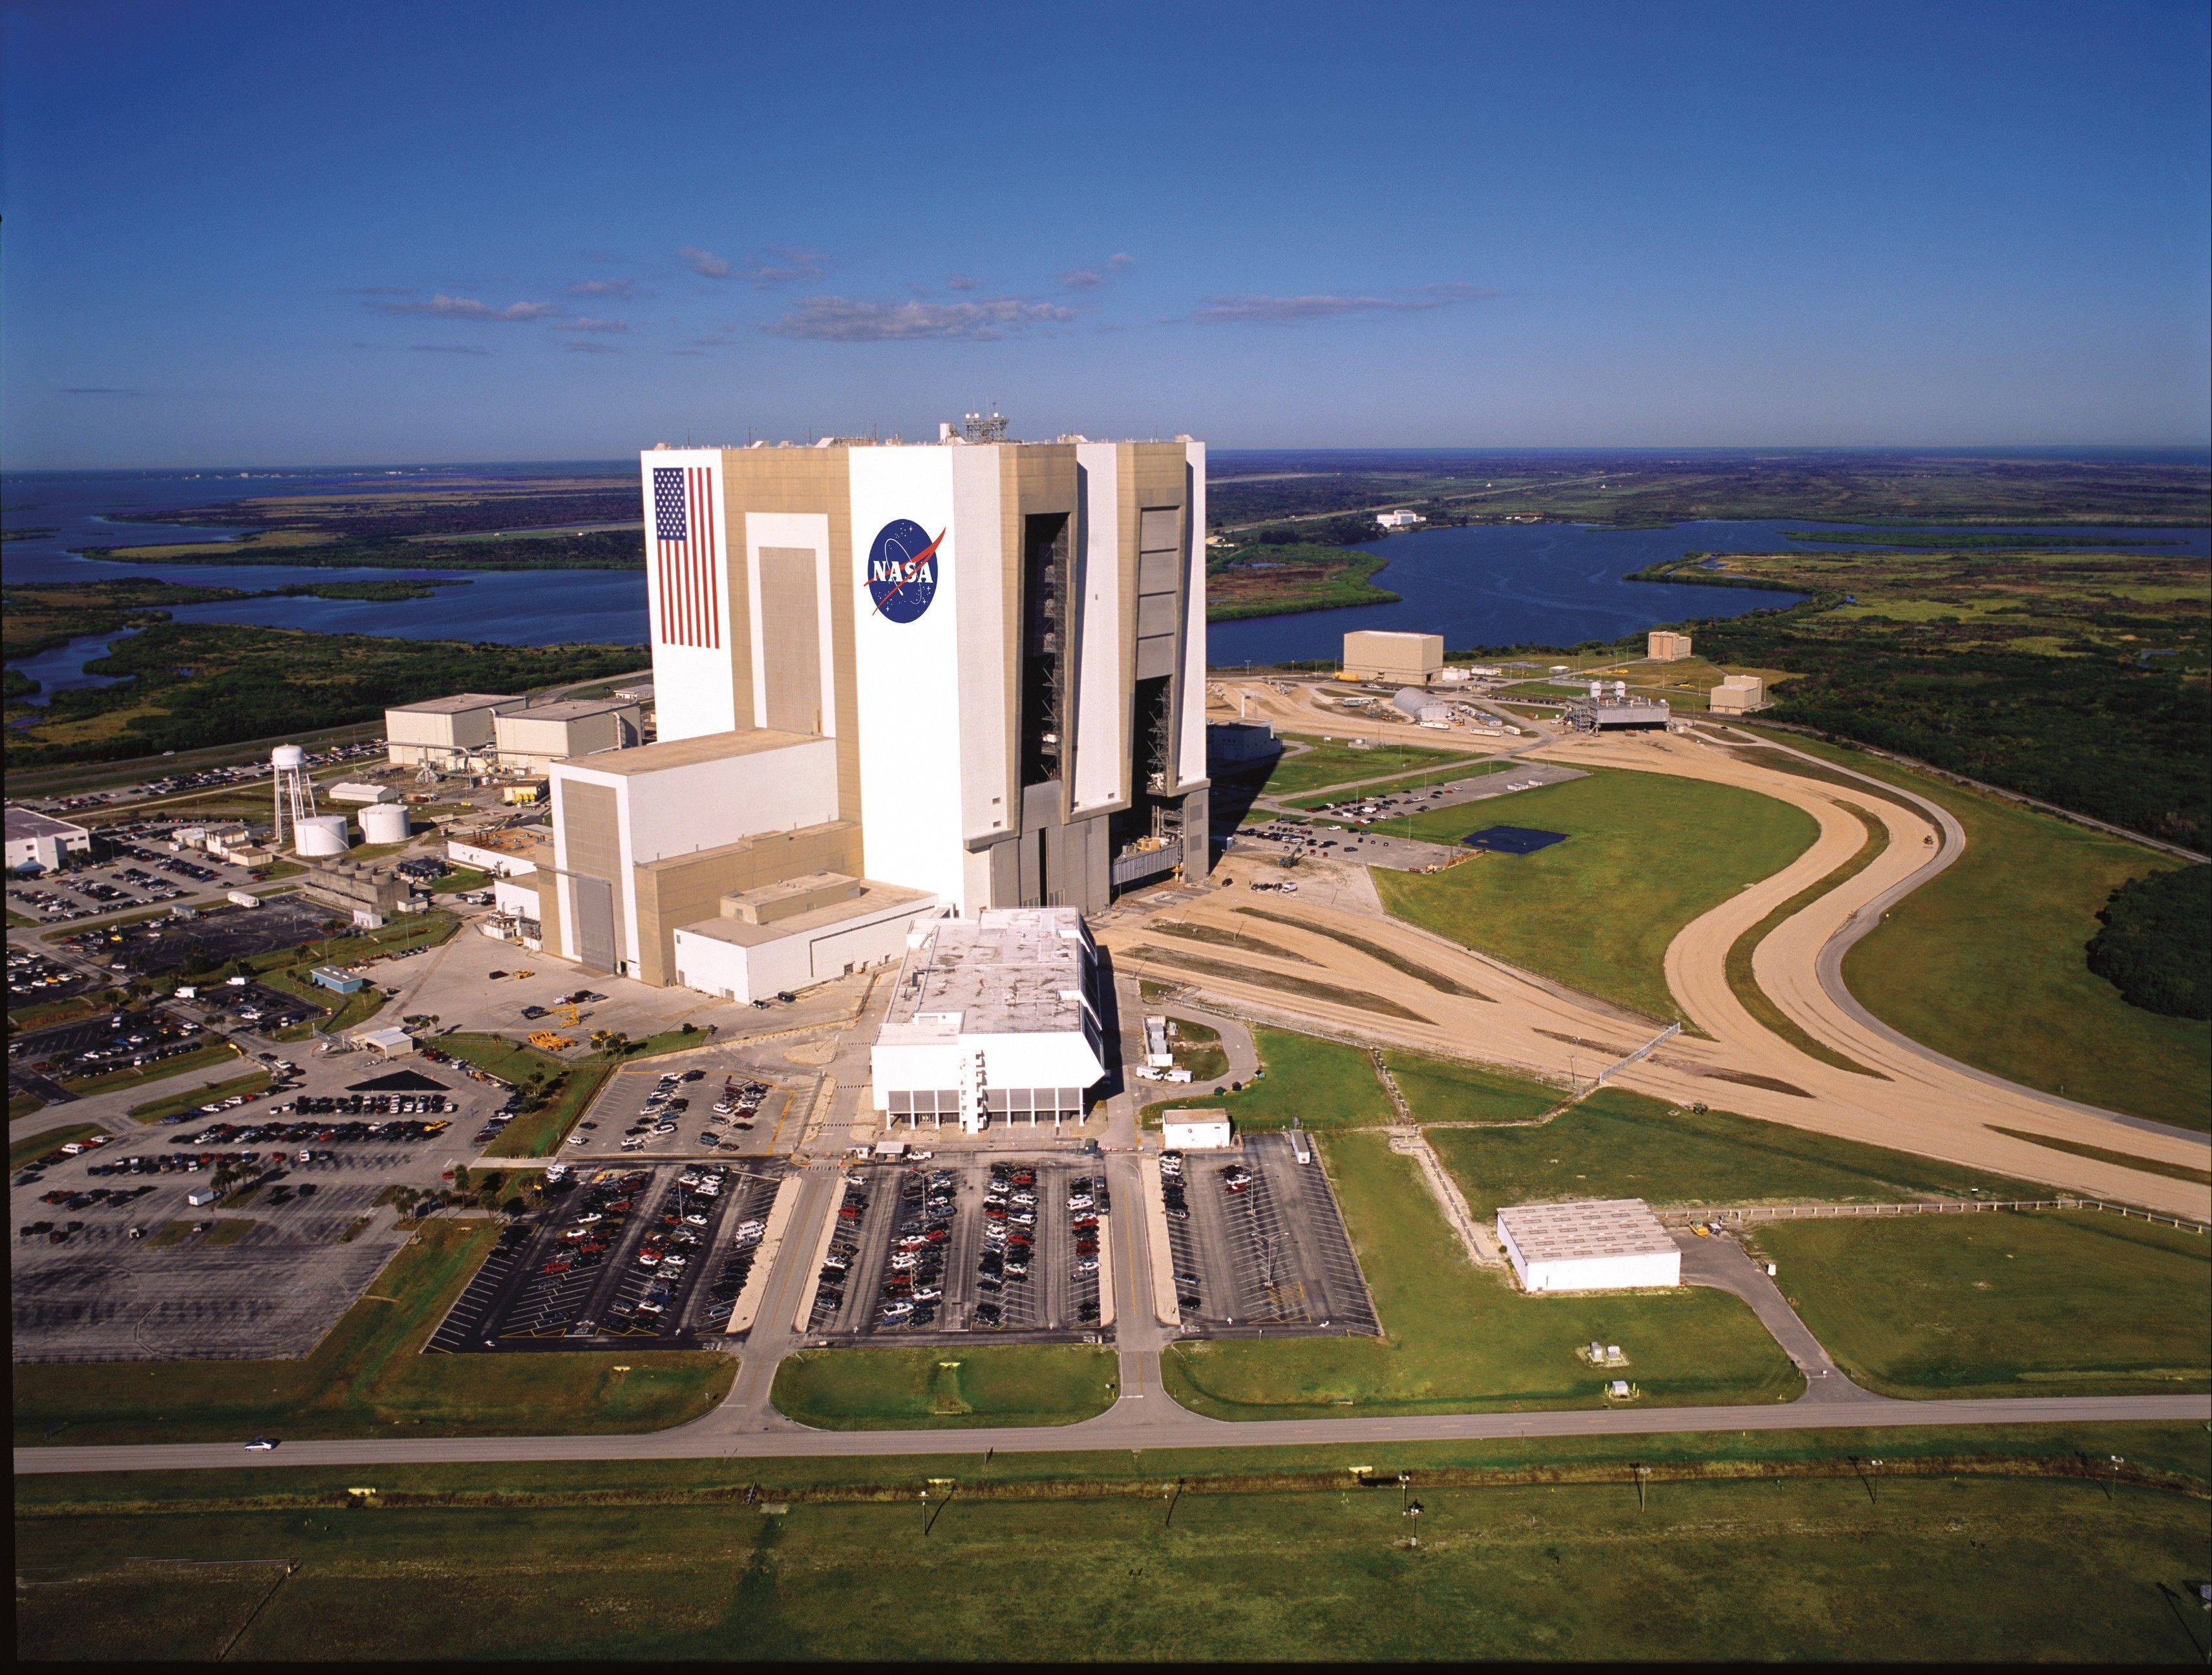 The Kennedy Space Center Visitor Complex is offering rare behind-the-scenes tours for its 50th anniversary year, including a tour of the 525-foot-tall Vehicle Assembly Building where the Apollo rockets and space shuttles were assembled.